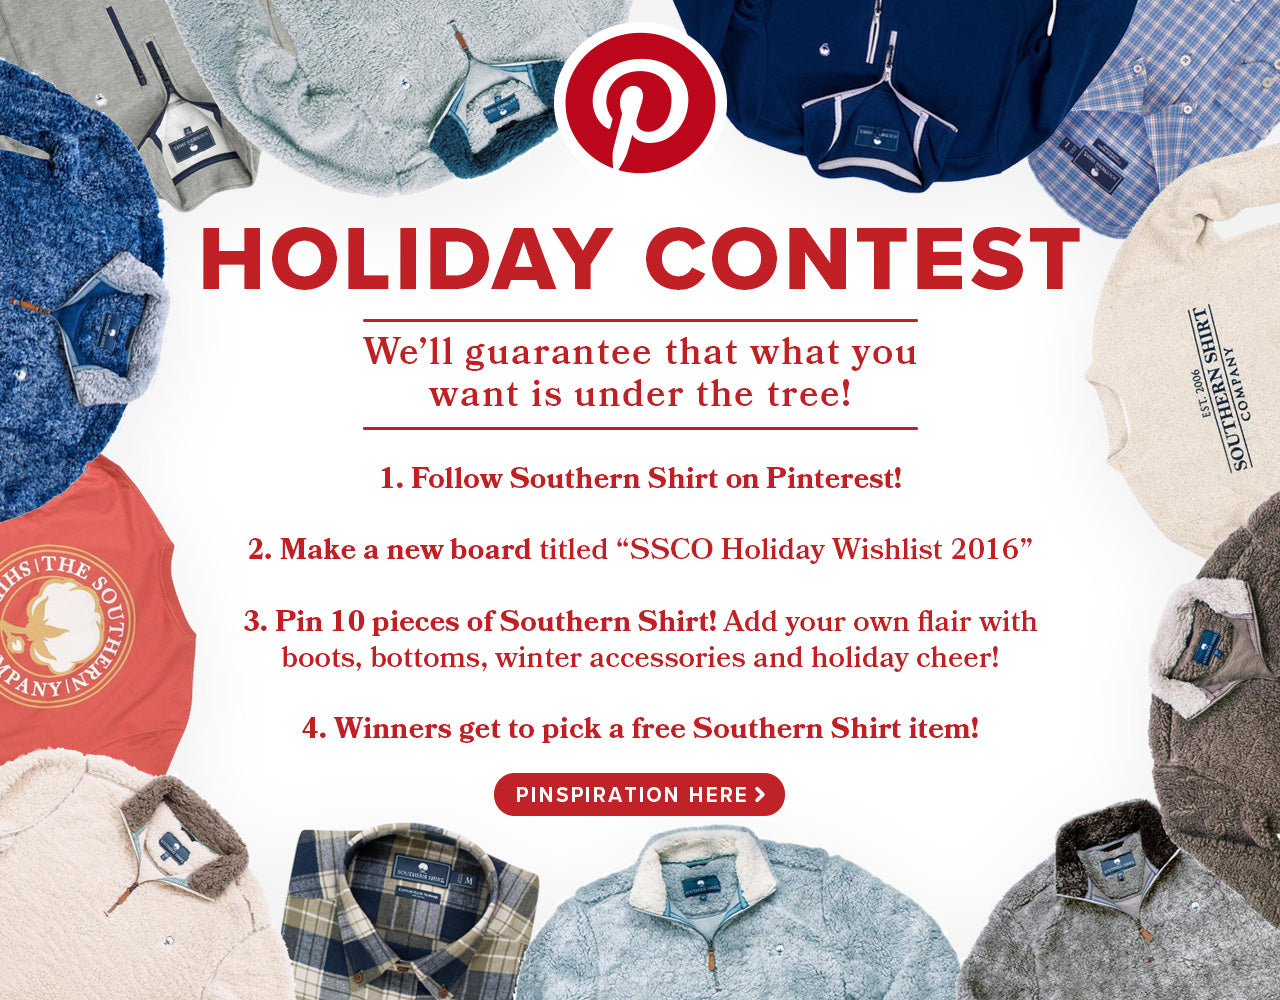 SSCO Holiday Wishlist 2016 Contest